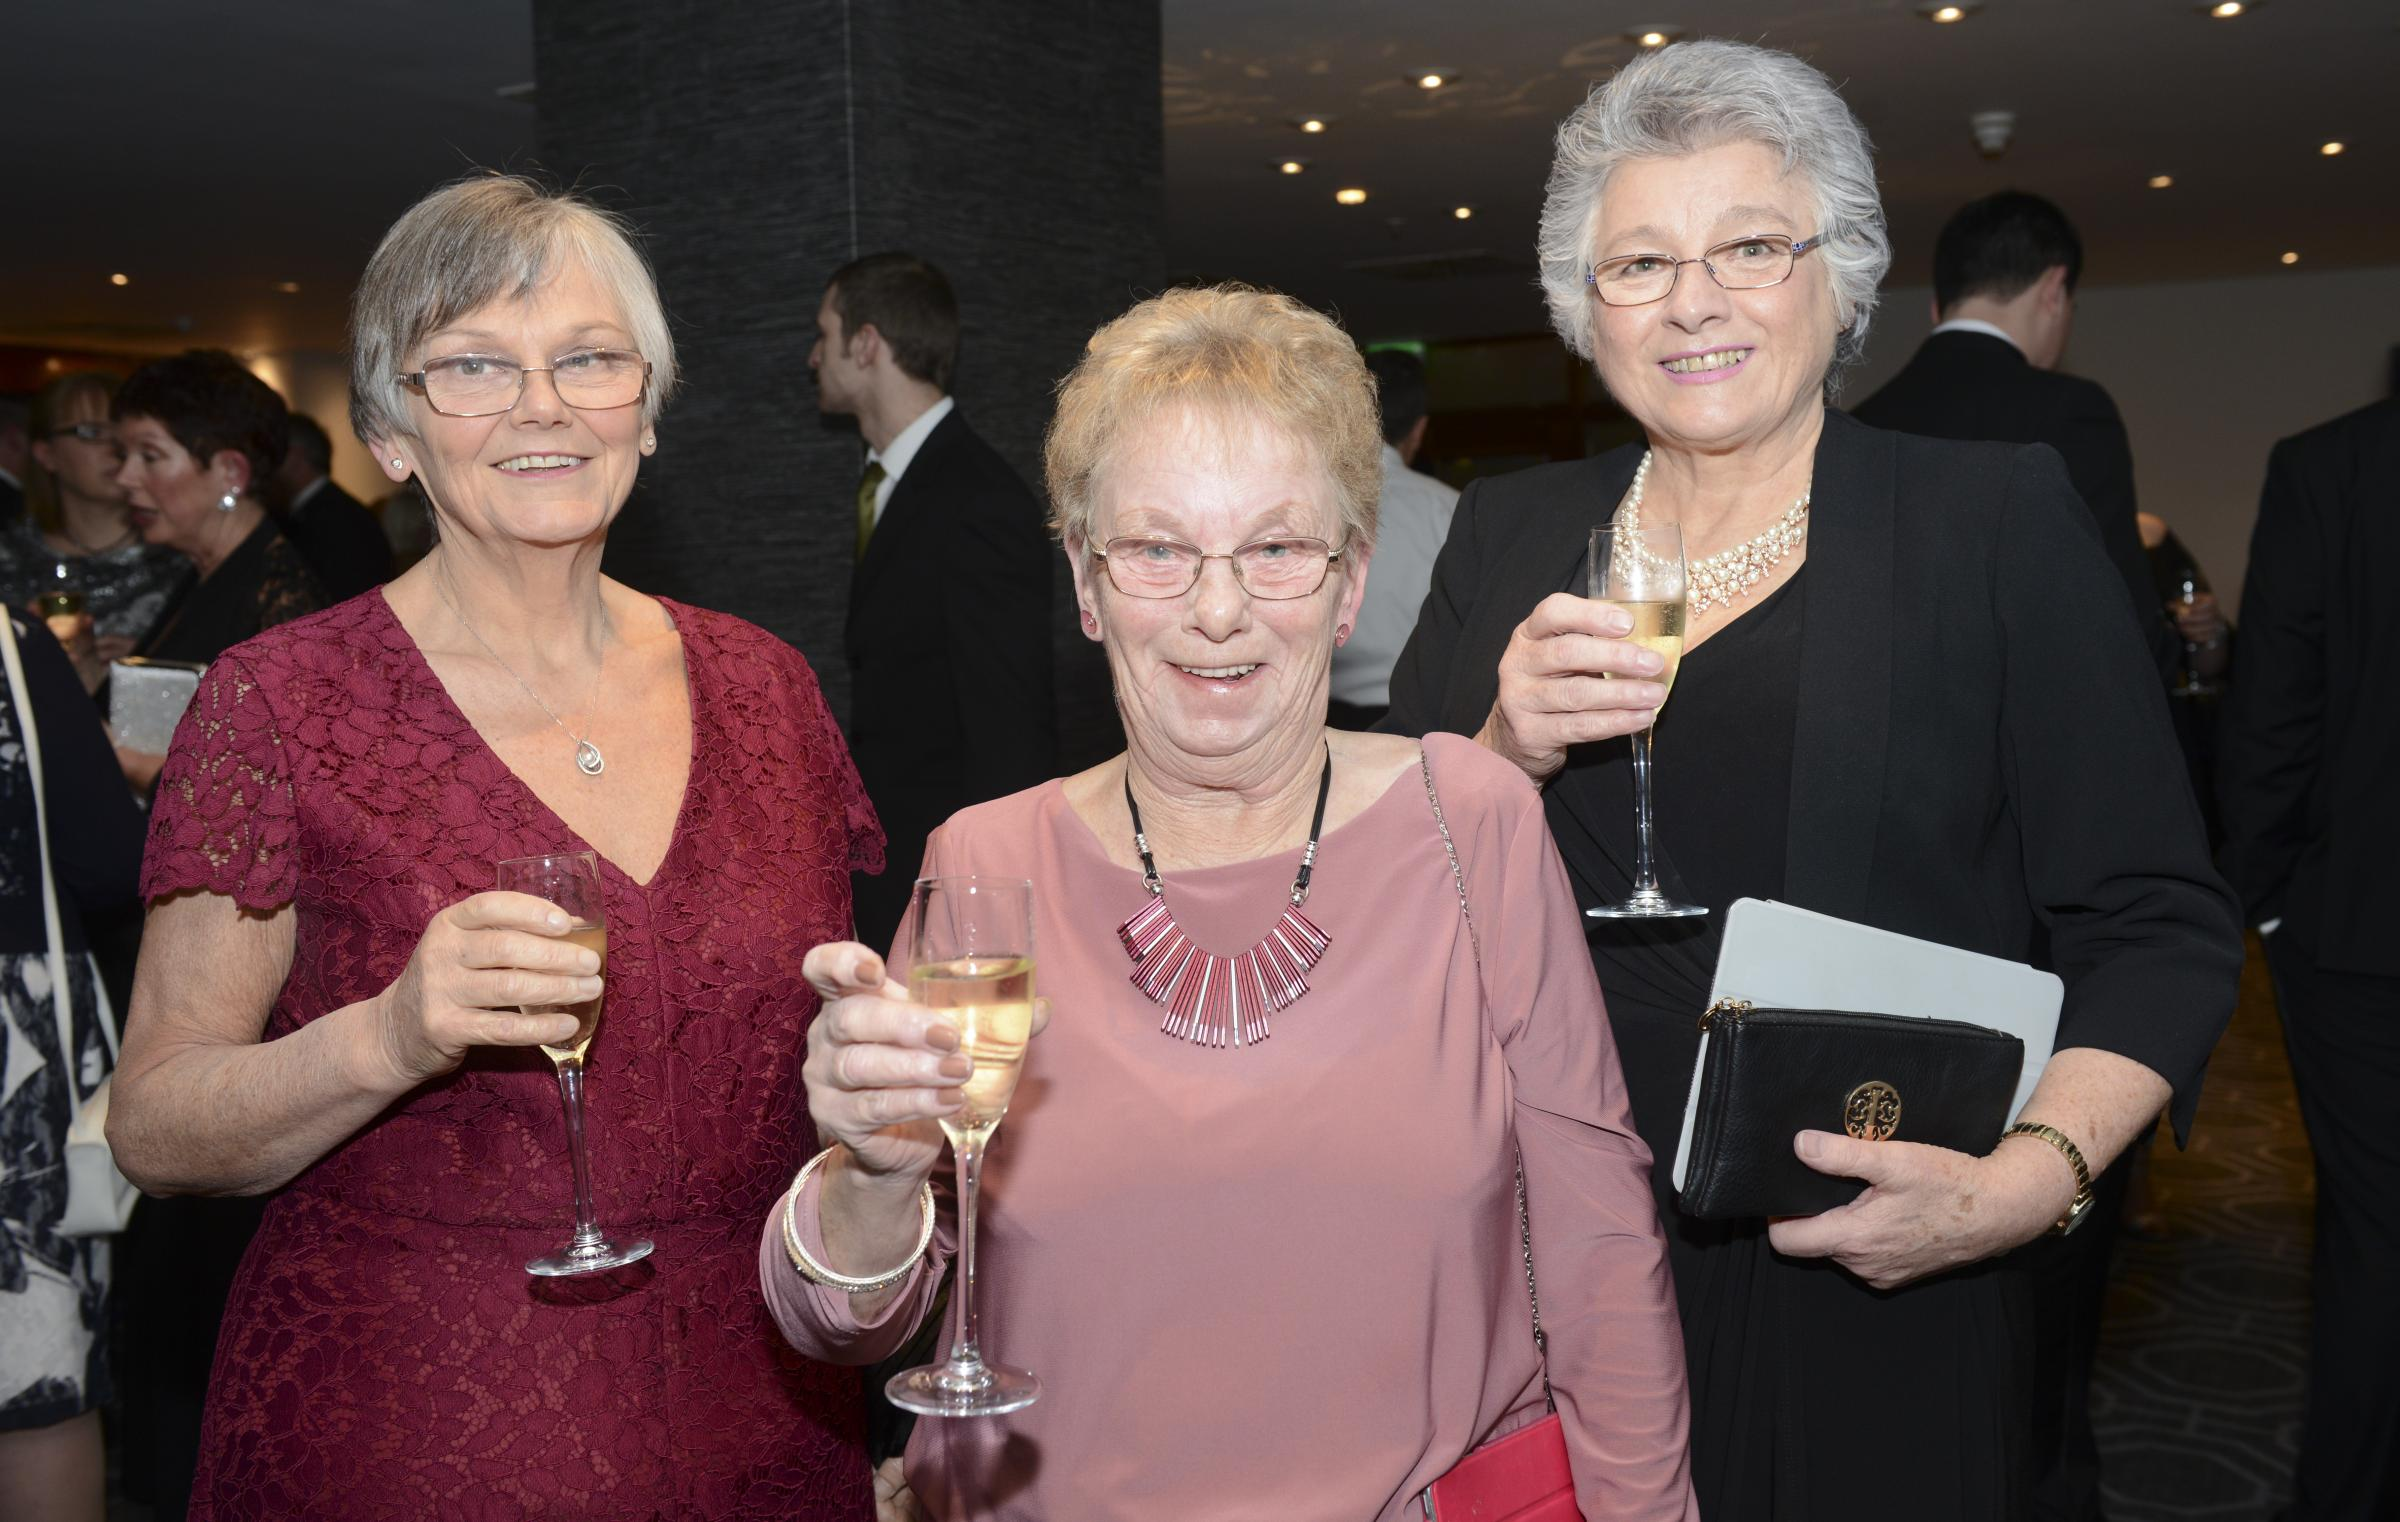 From left: Dr Sarah Horrocks, Chair of Clwyd Alyn Housing Association, Pentre Mawr resident Ann Rothwell, and Pentre Mawr Warden Alison Pring at the recent WCVA Award ceremony in Cardiff